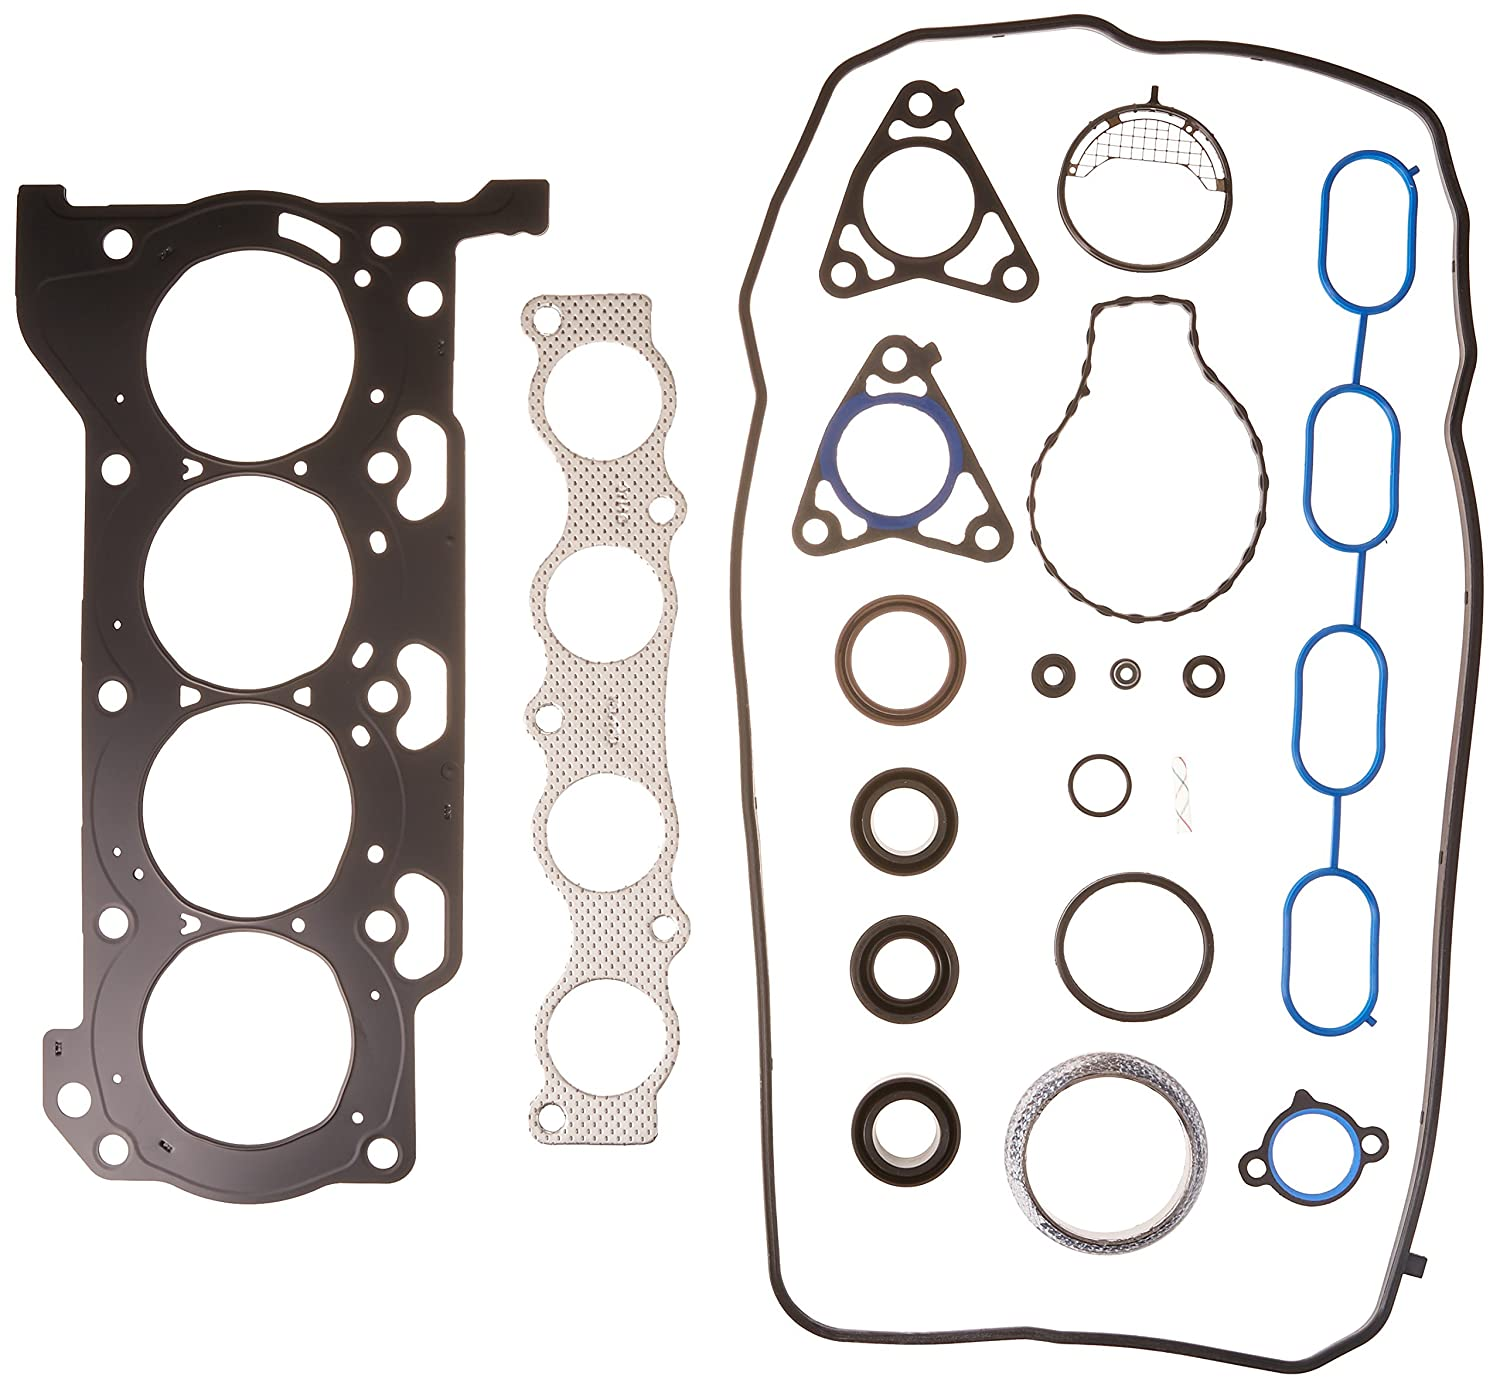 SCITOO Replacement for Head Gasket Sets fit Ford E350 F250 F350 Diesel Turbo 6.0L VIN P 2003-2010 Automotive Engine Head Gaskets Sets